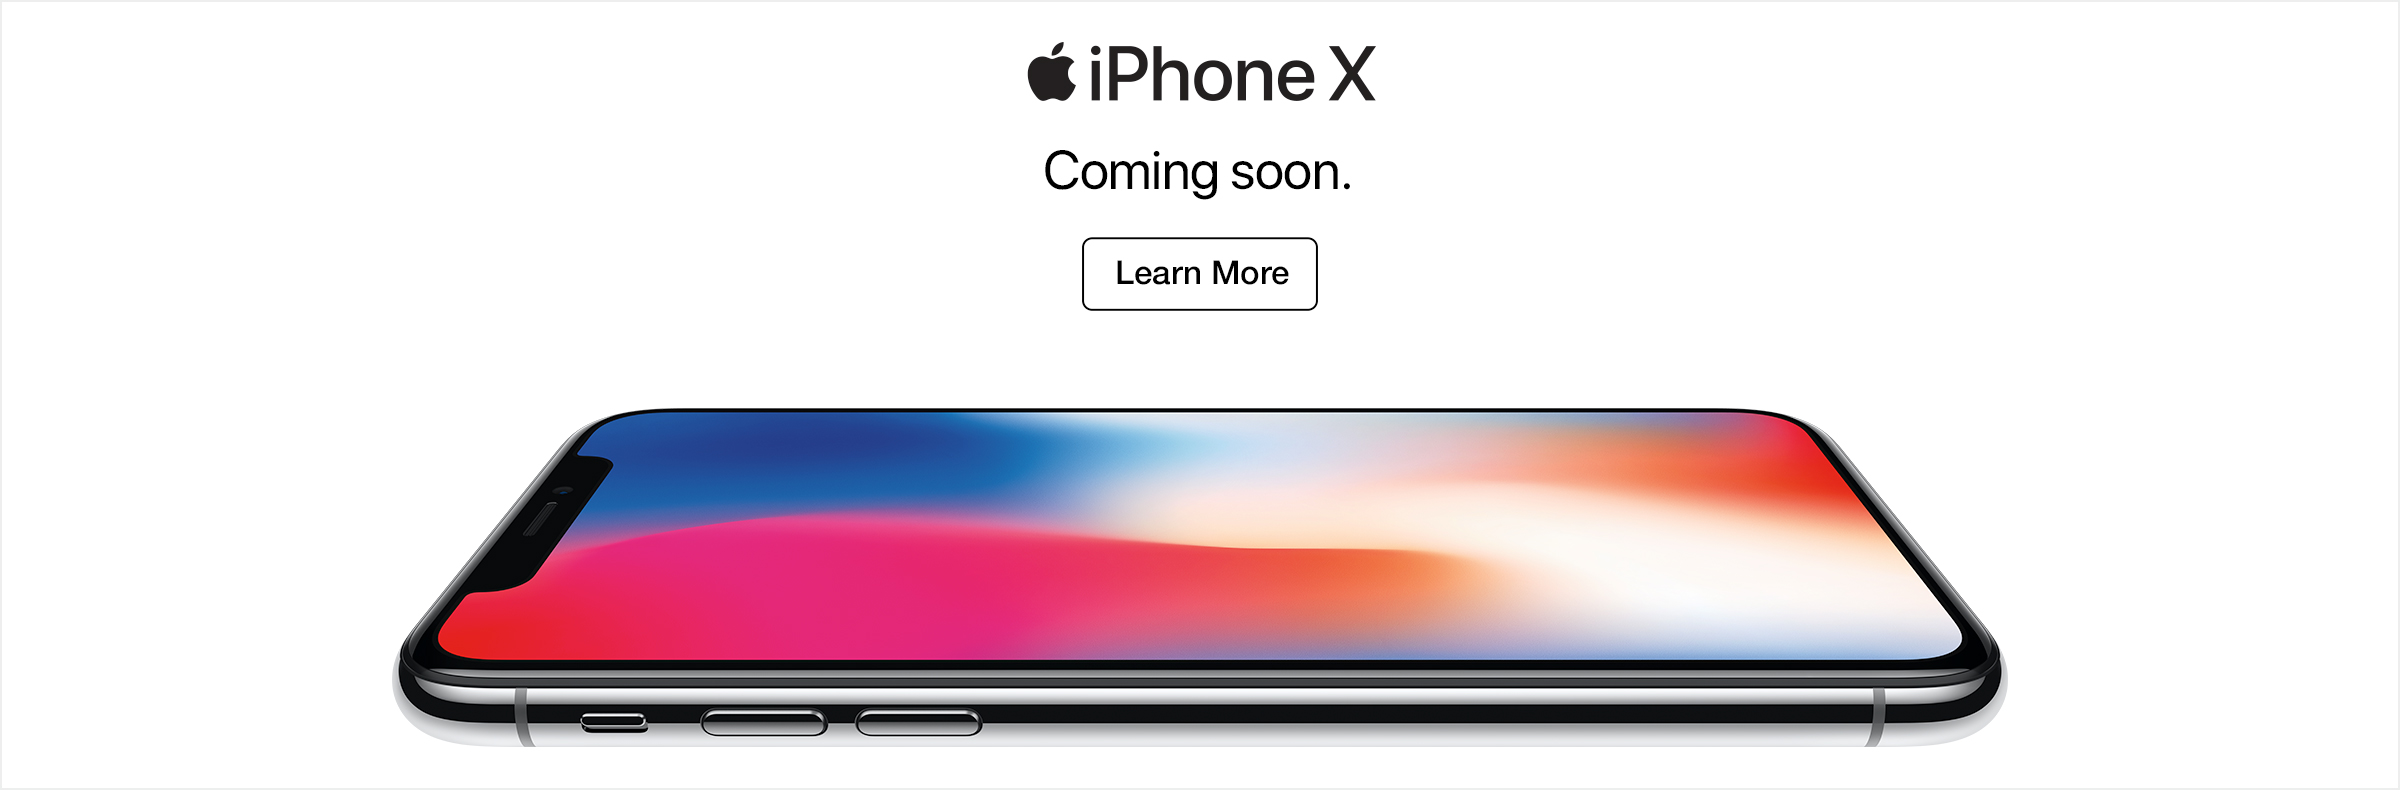 iPhone X Coming Soon to Tbooth wireless